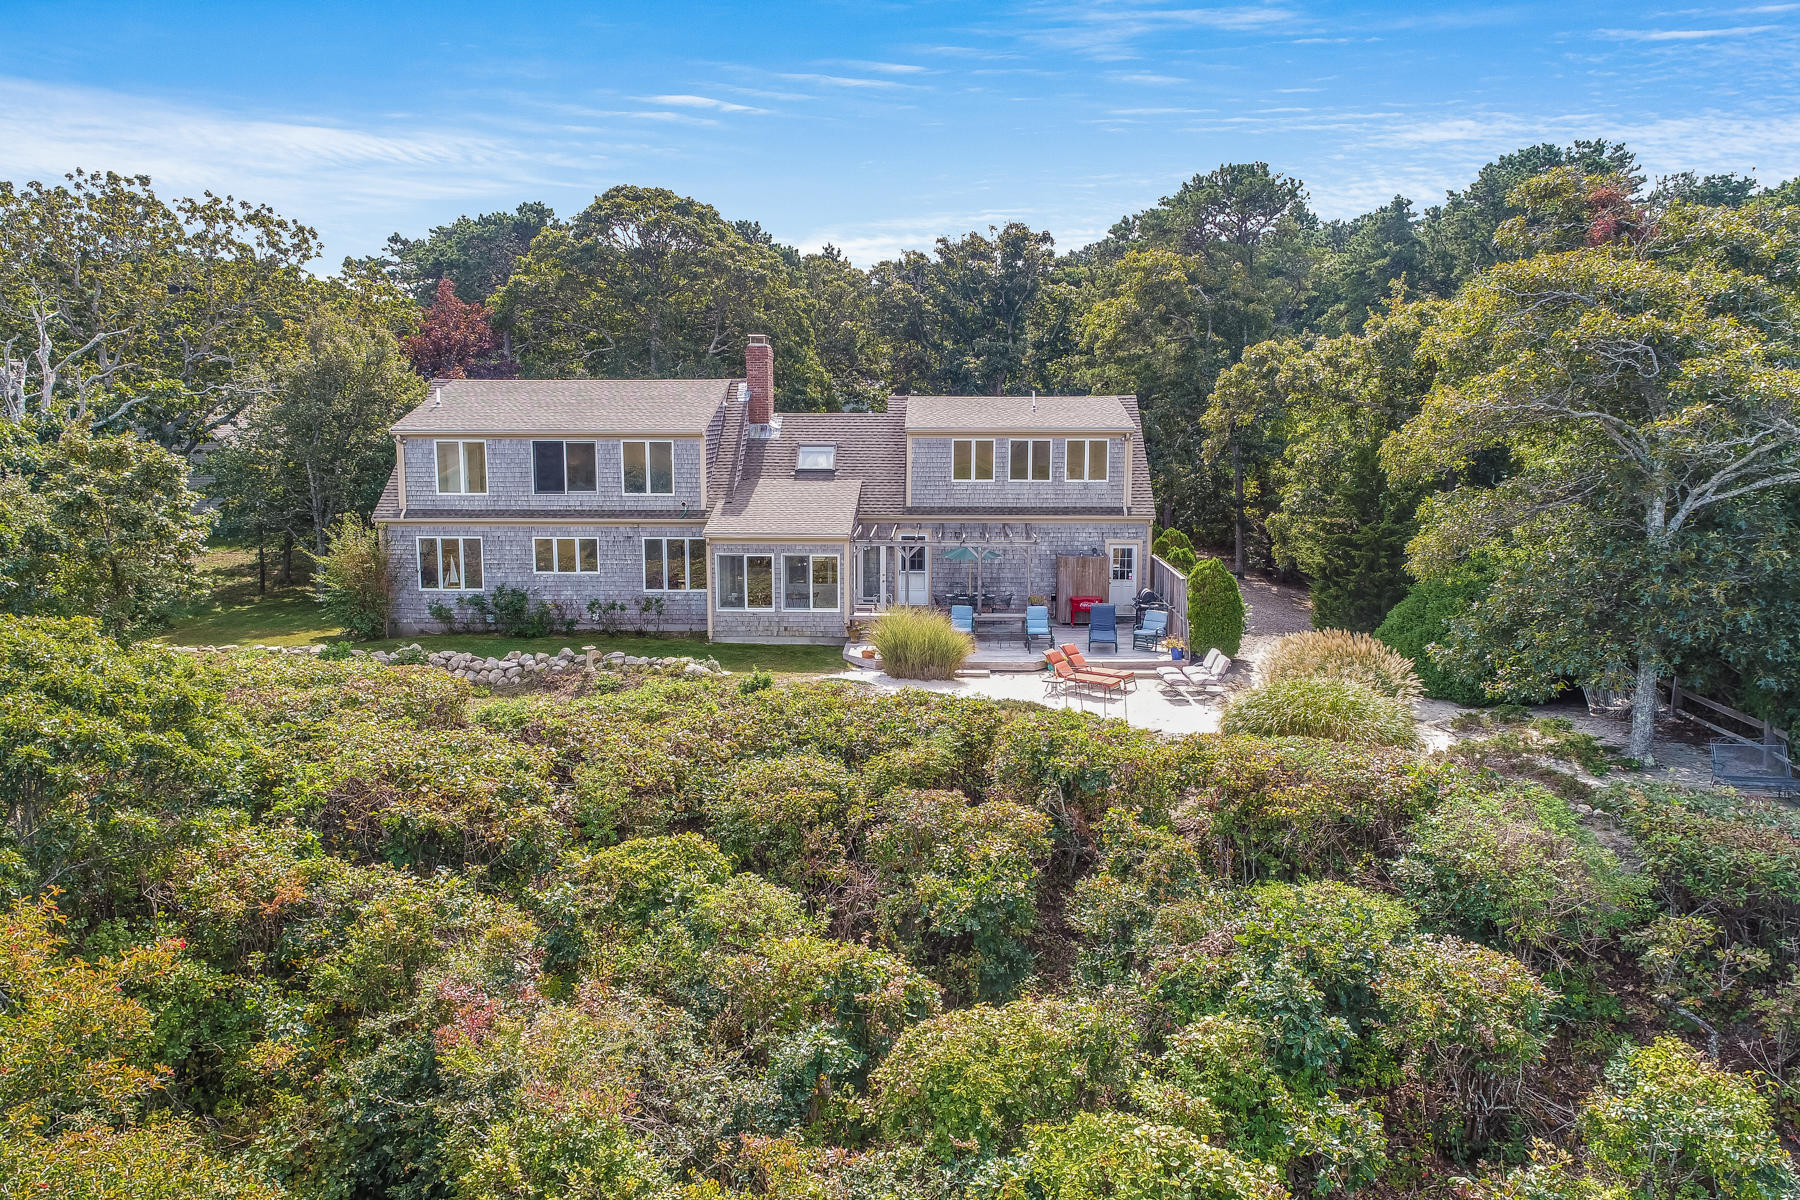 click to view more details 168 Highland Moors Drive, Brewster, MA 02631